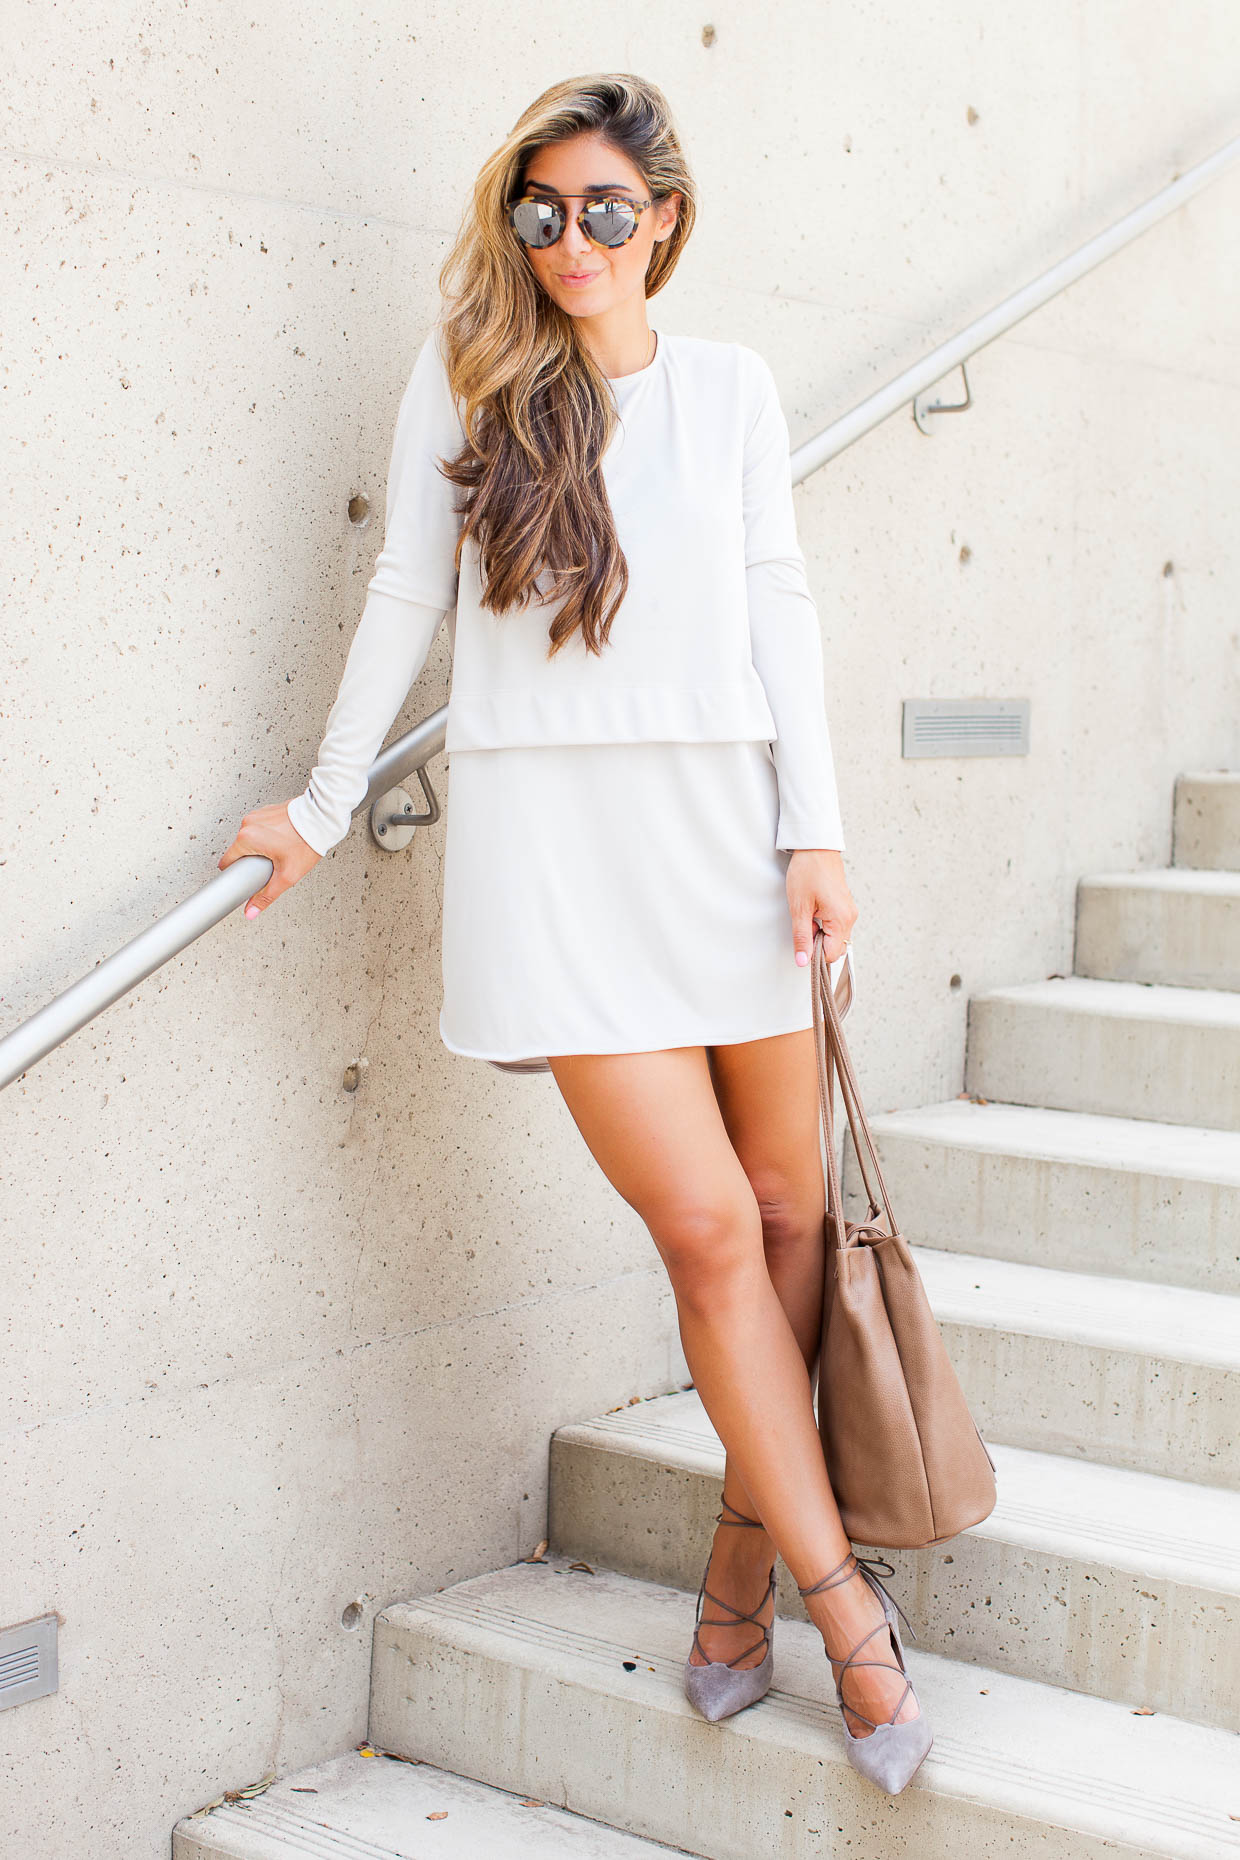 Fashion Blogger The Darling Detail is wearing a Sincerely Jules 'Savoy' Long Sleeve Shirtdress, Sole Society Madeline Lace-Up Pumps, a Sole Society Ariana Bucket, and Westward Leaning Flower 1 Sunglasses.